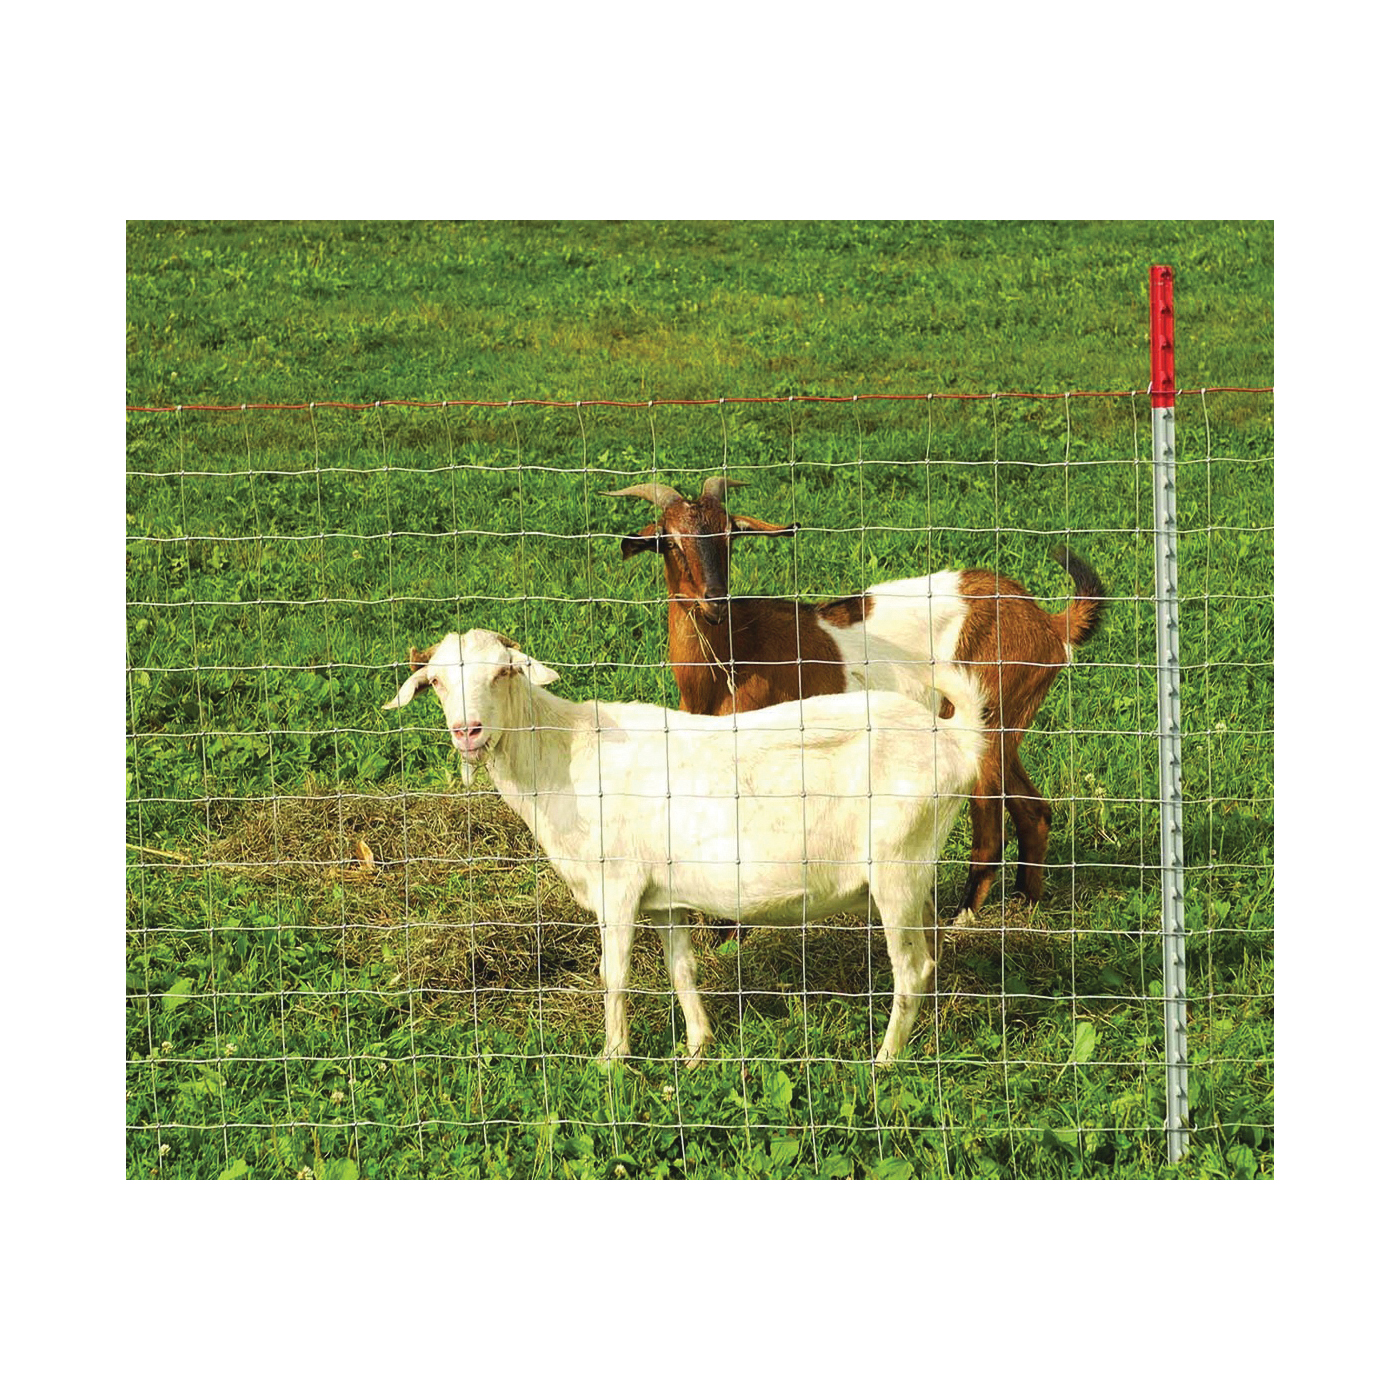 Picture of Red Brand Square Deal 70315 Sheep and Goat Fence, 330 ft L, 48 in H, 4 x 4 in Mesh, 12-1/2 Gauge, Galvanized